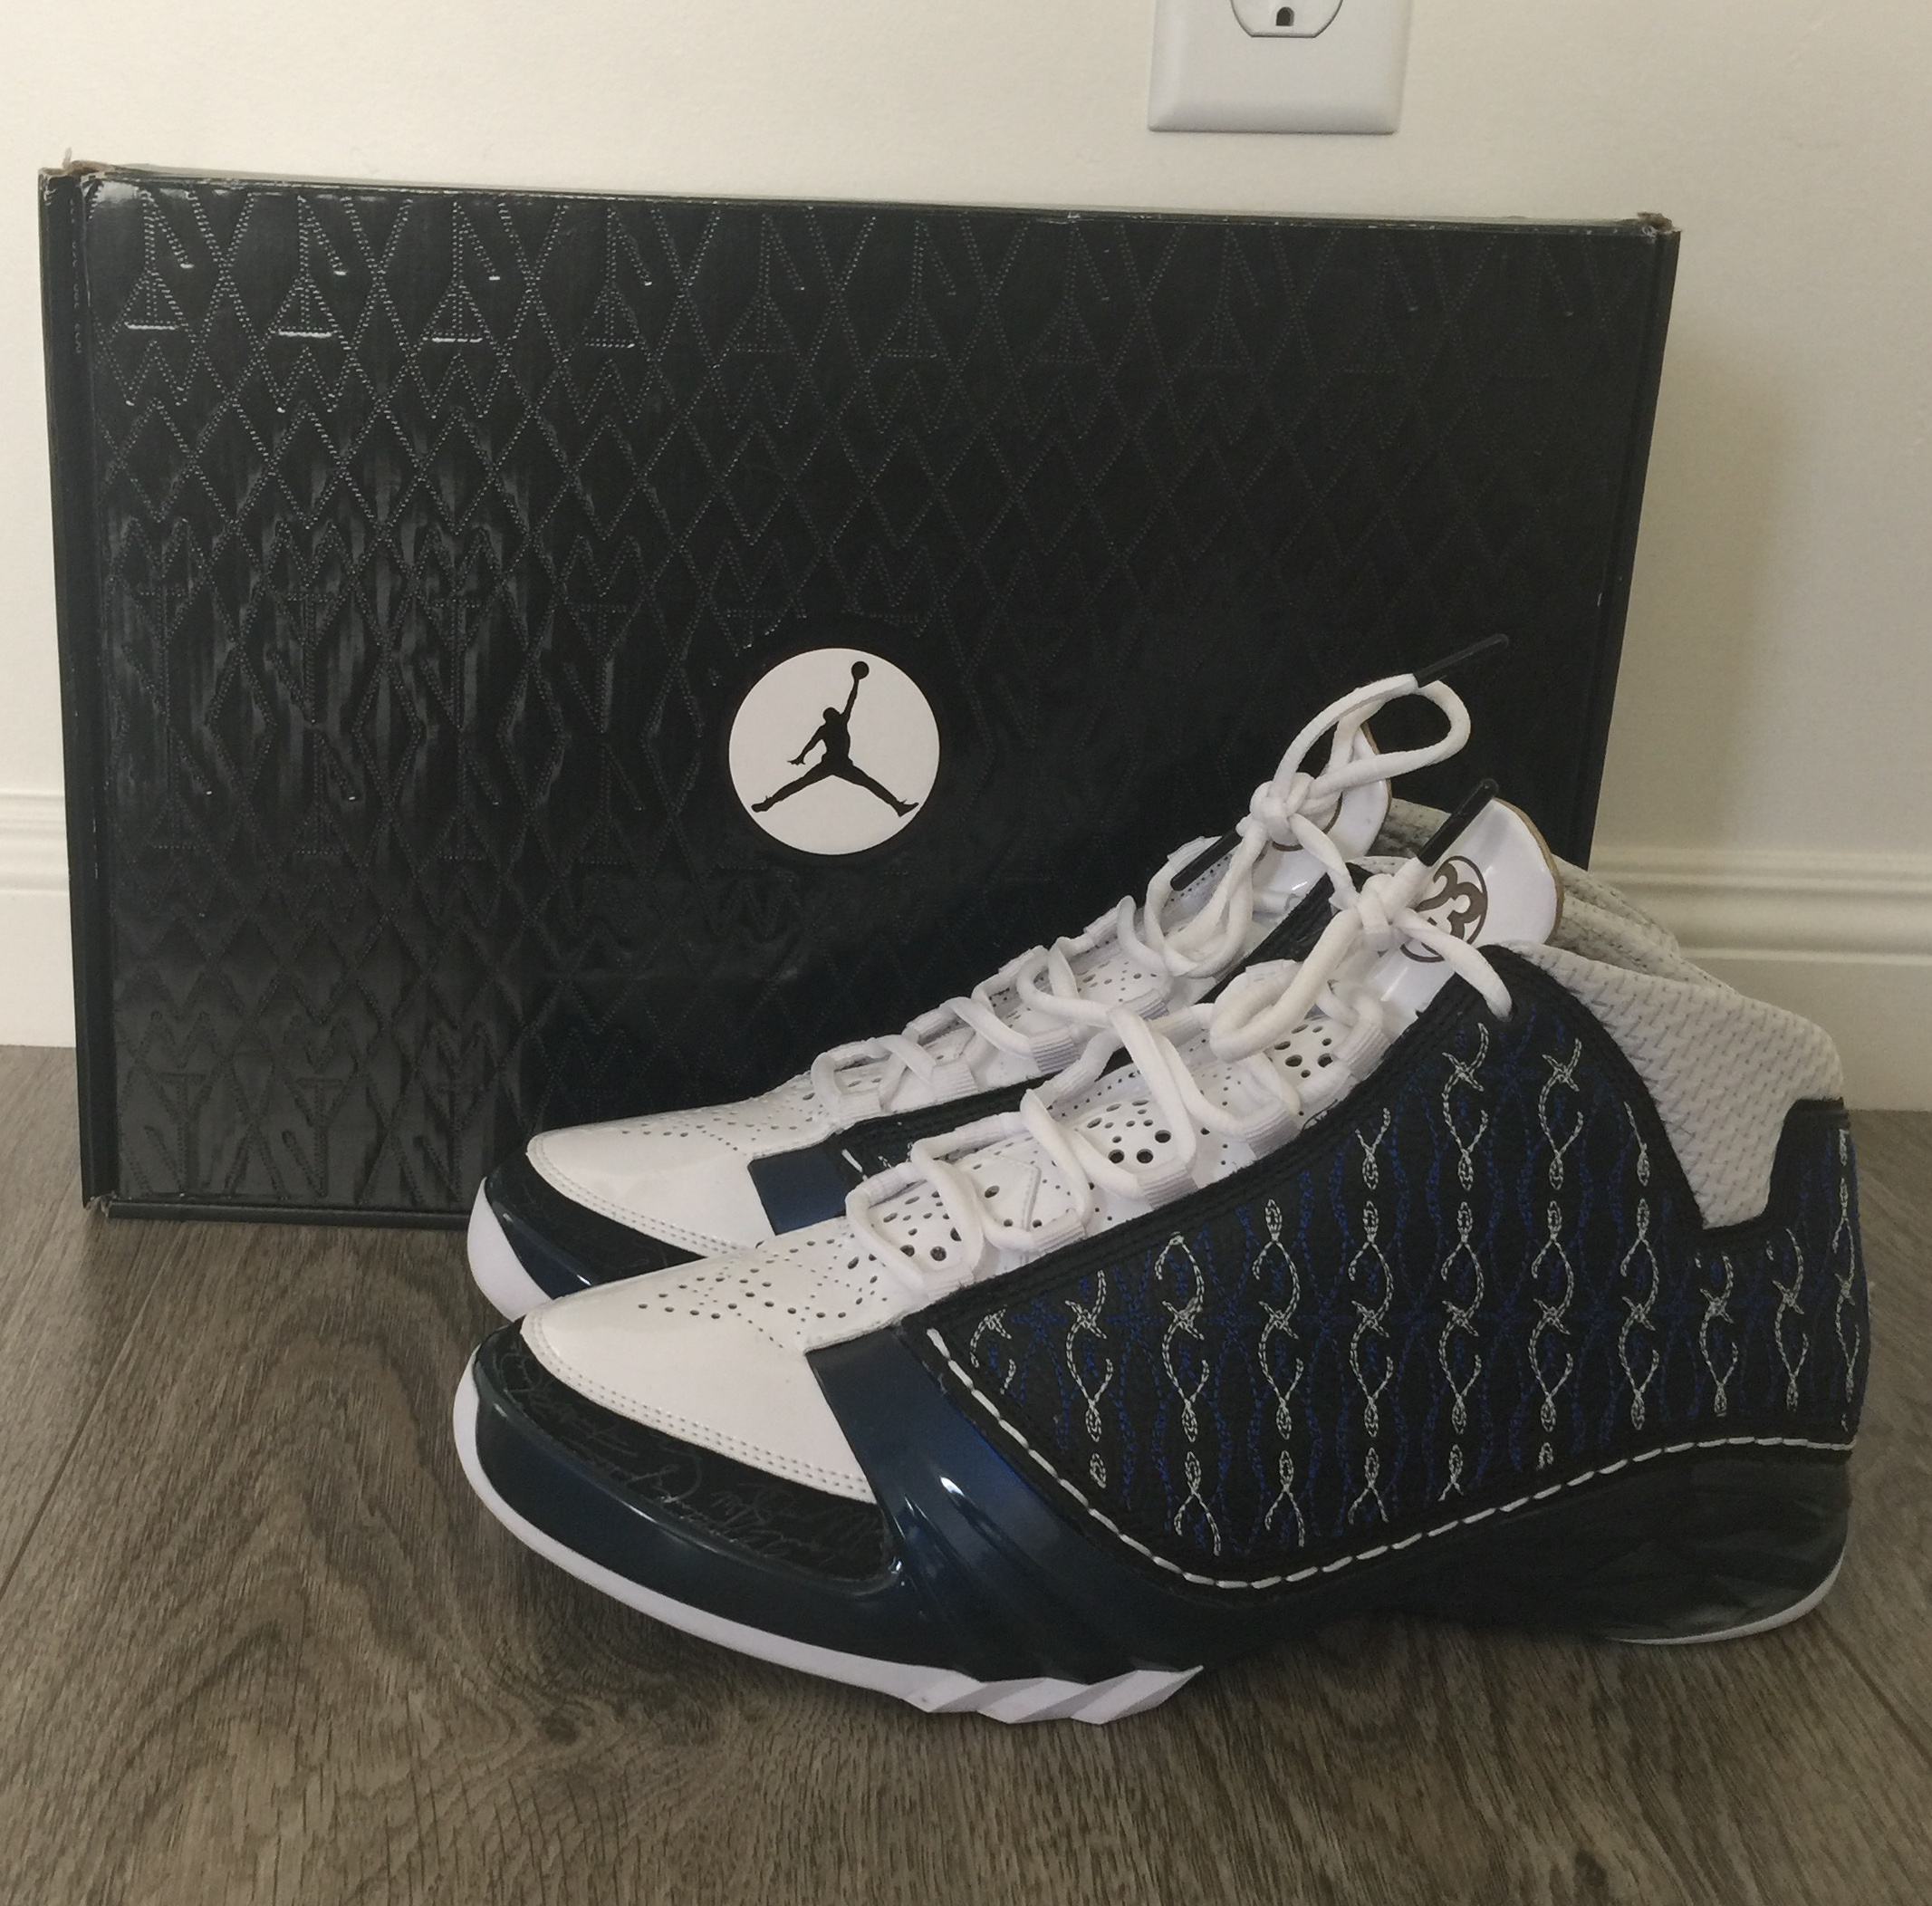 finest selection 01272 322a3 ... File Air Jordan XX3, (Wizards Colorway).jpg ...